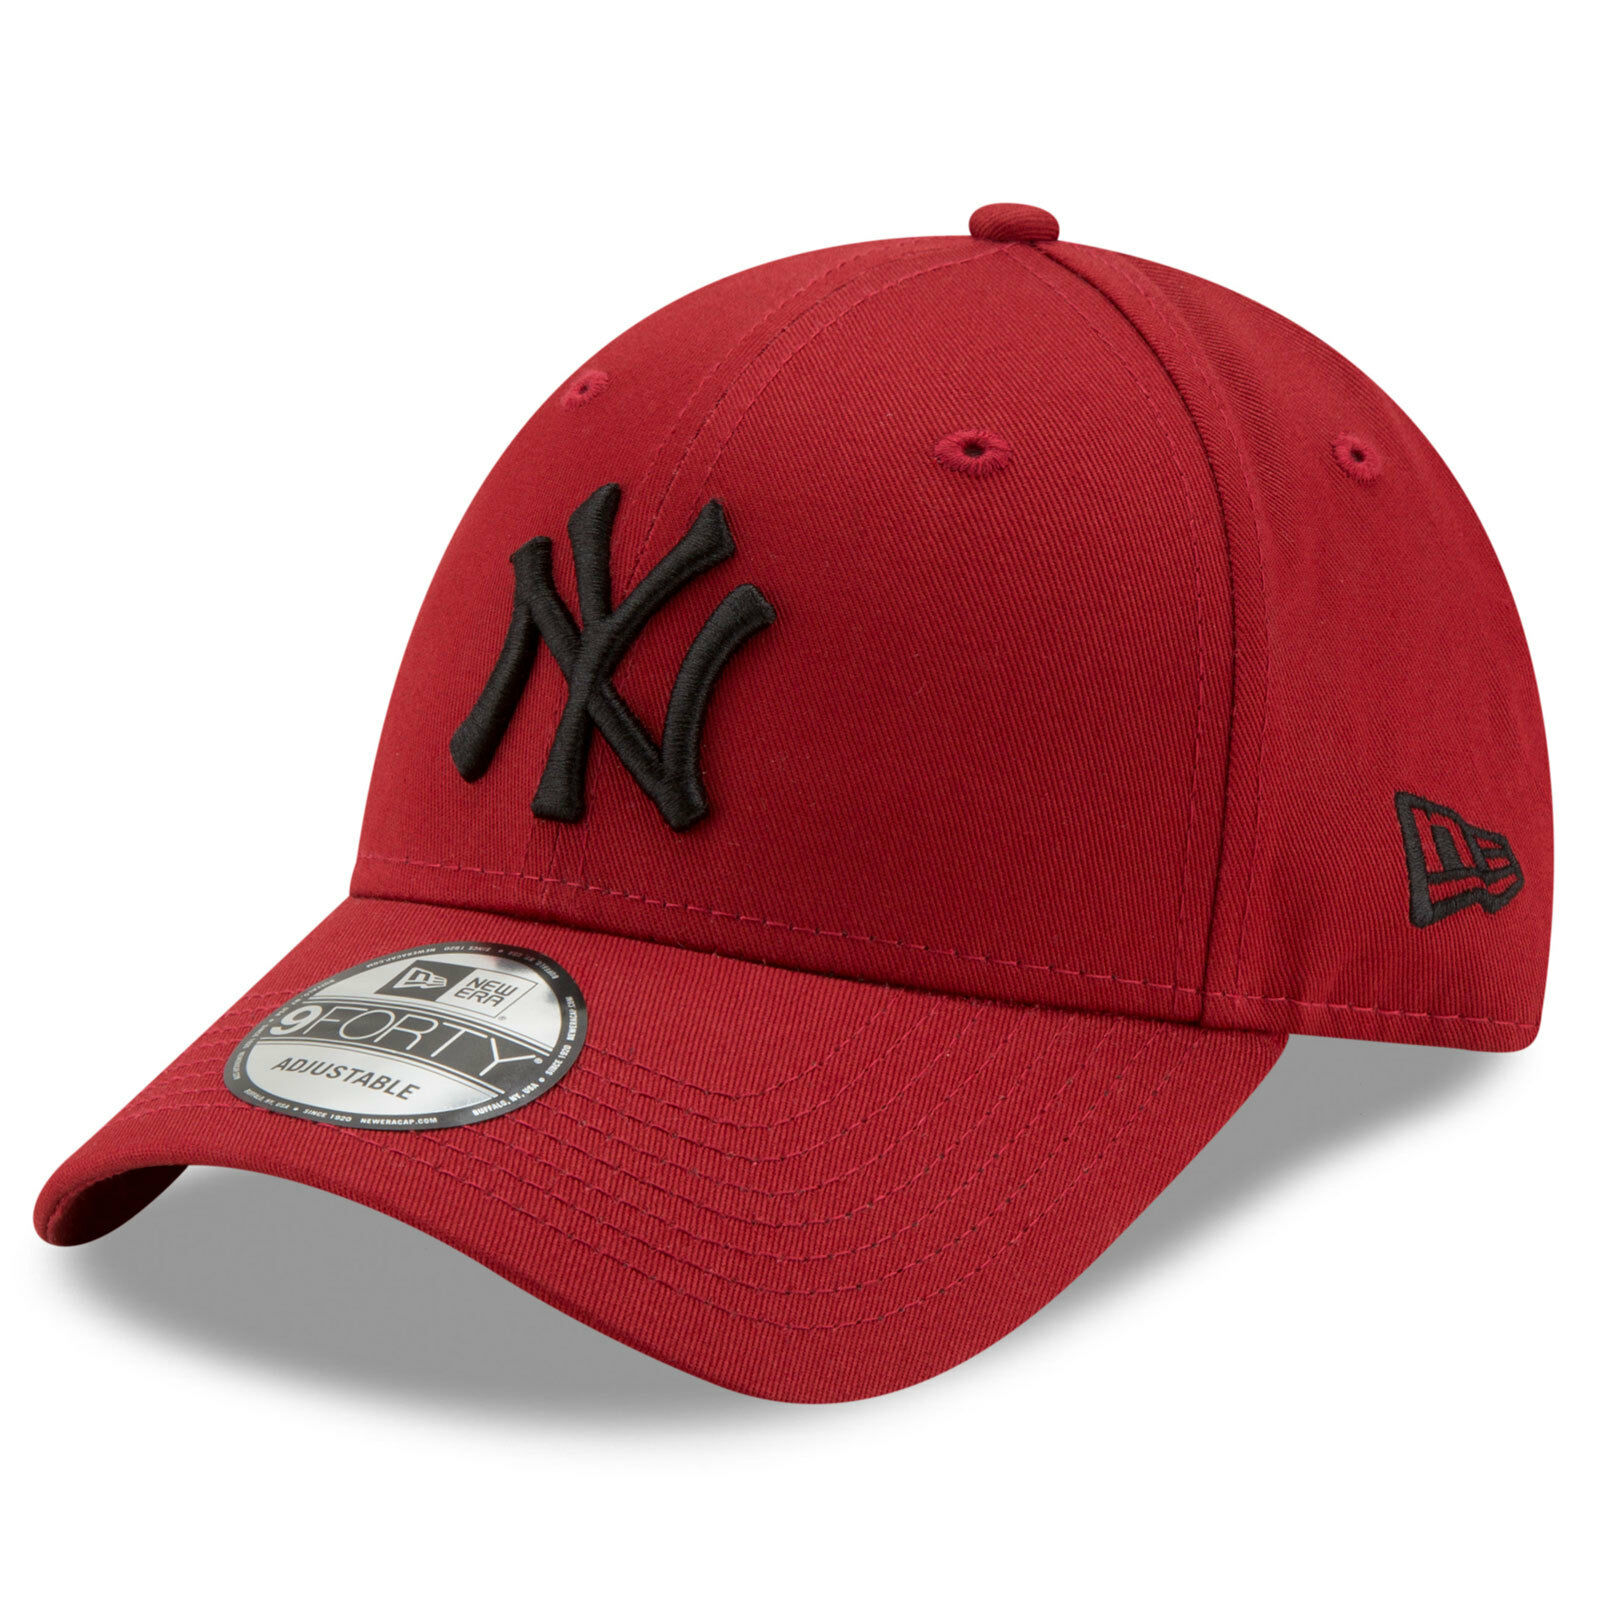 New York Yankees #2954